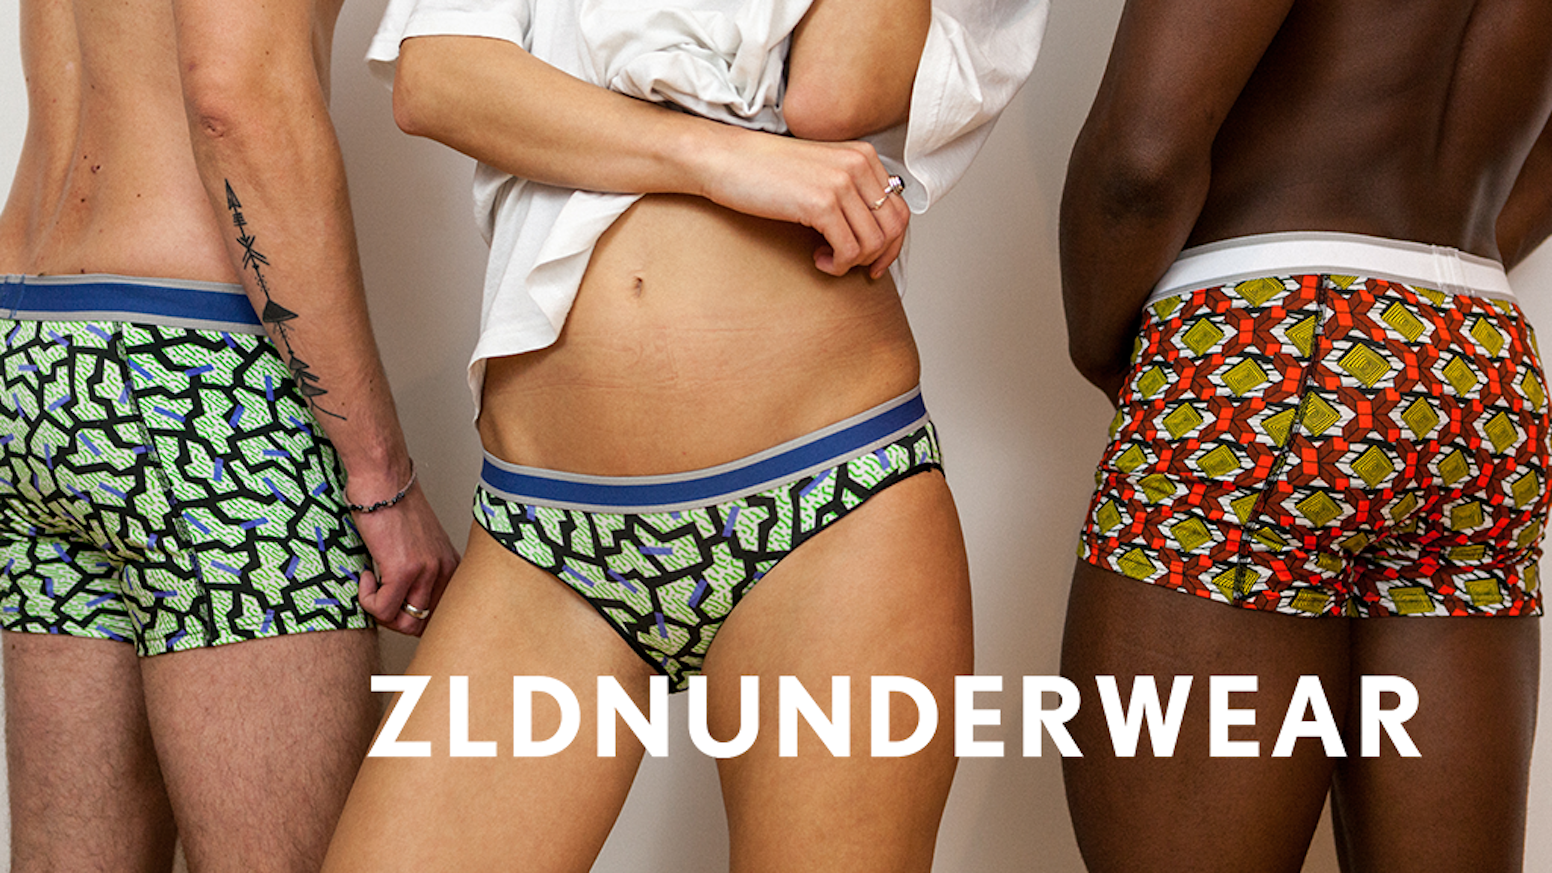 MicroModal® underwear featuring original, London-designed prints and a refined tailored fit.